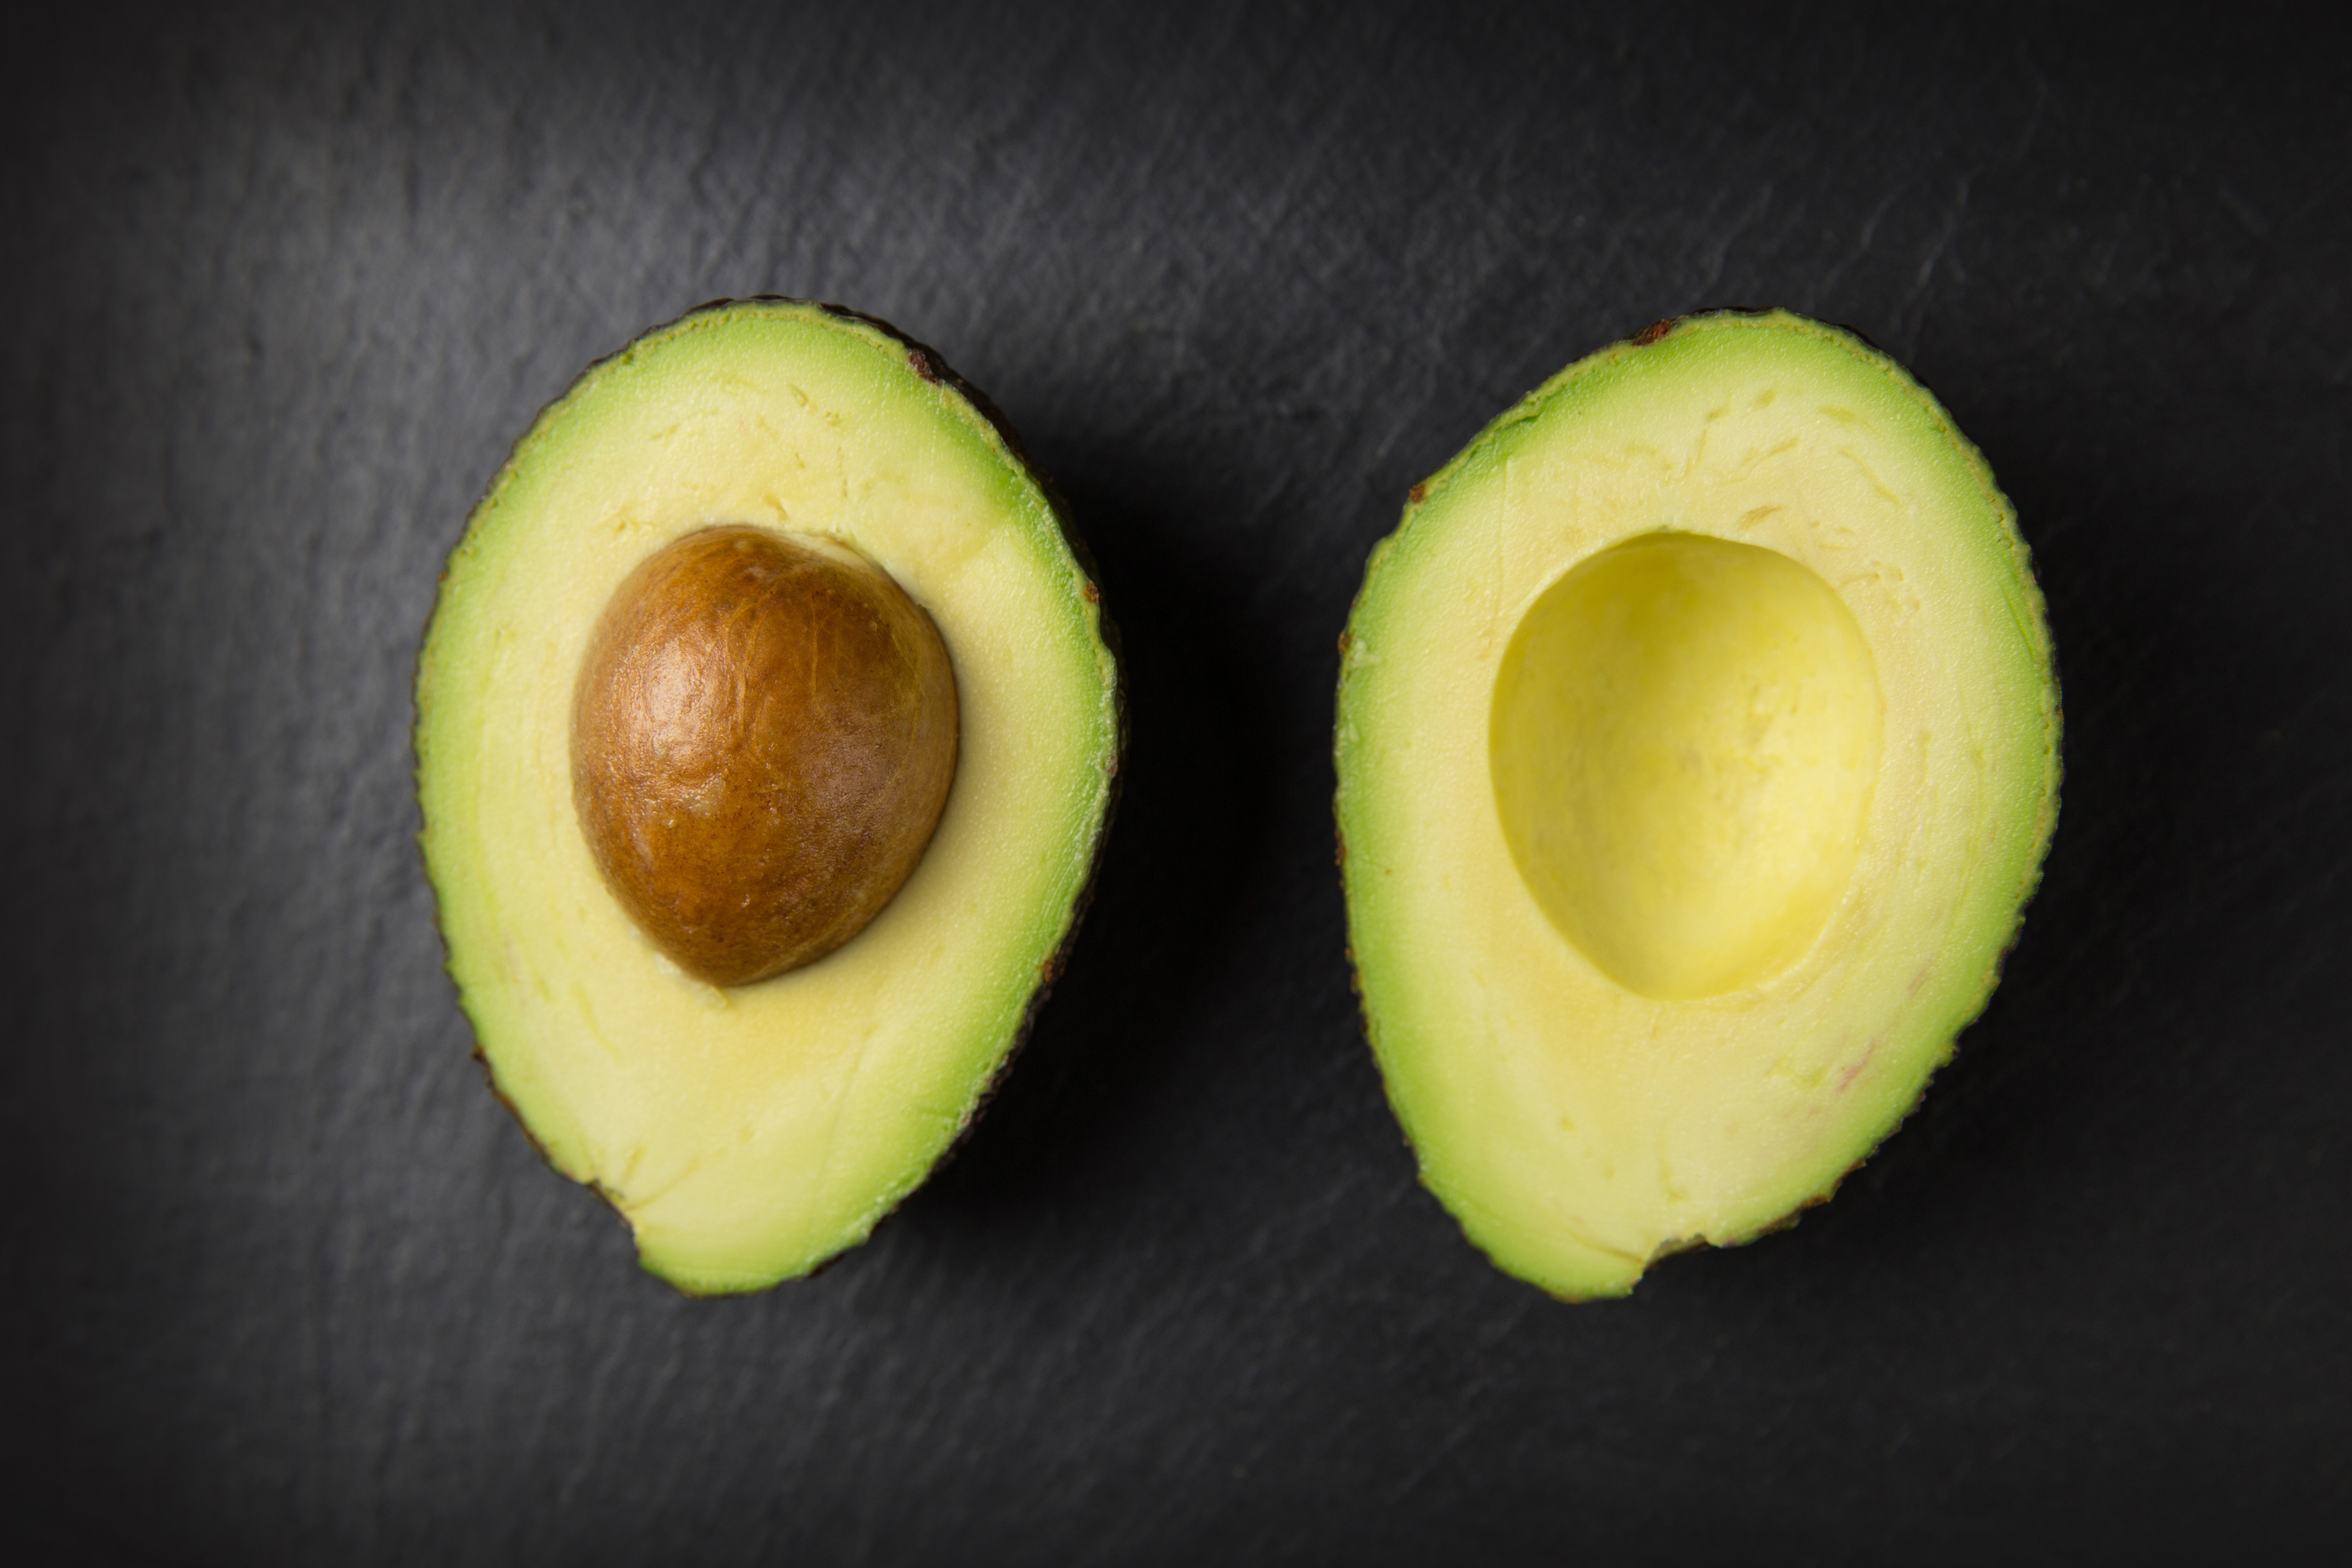 Packed with healthy fats, avocados are perfect healthy snack